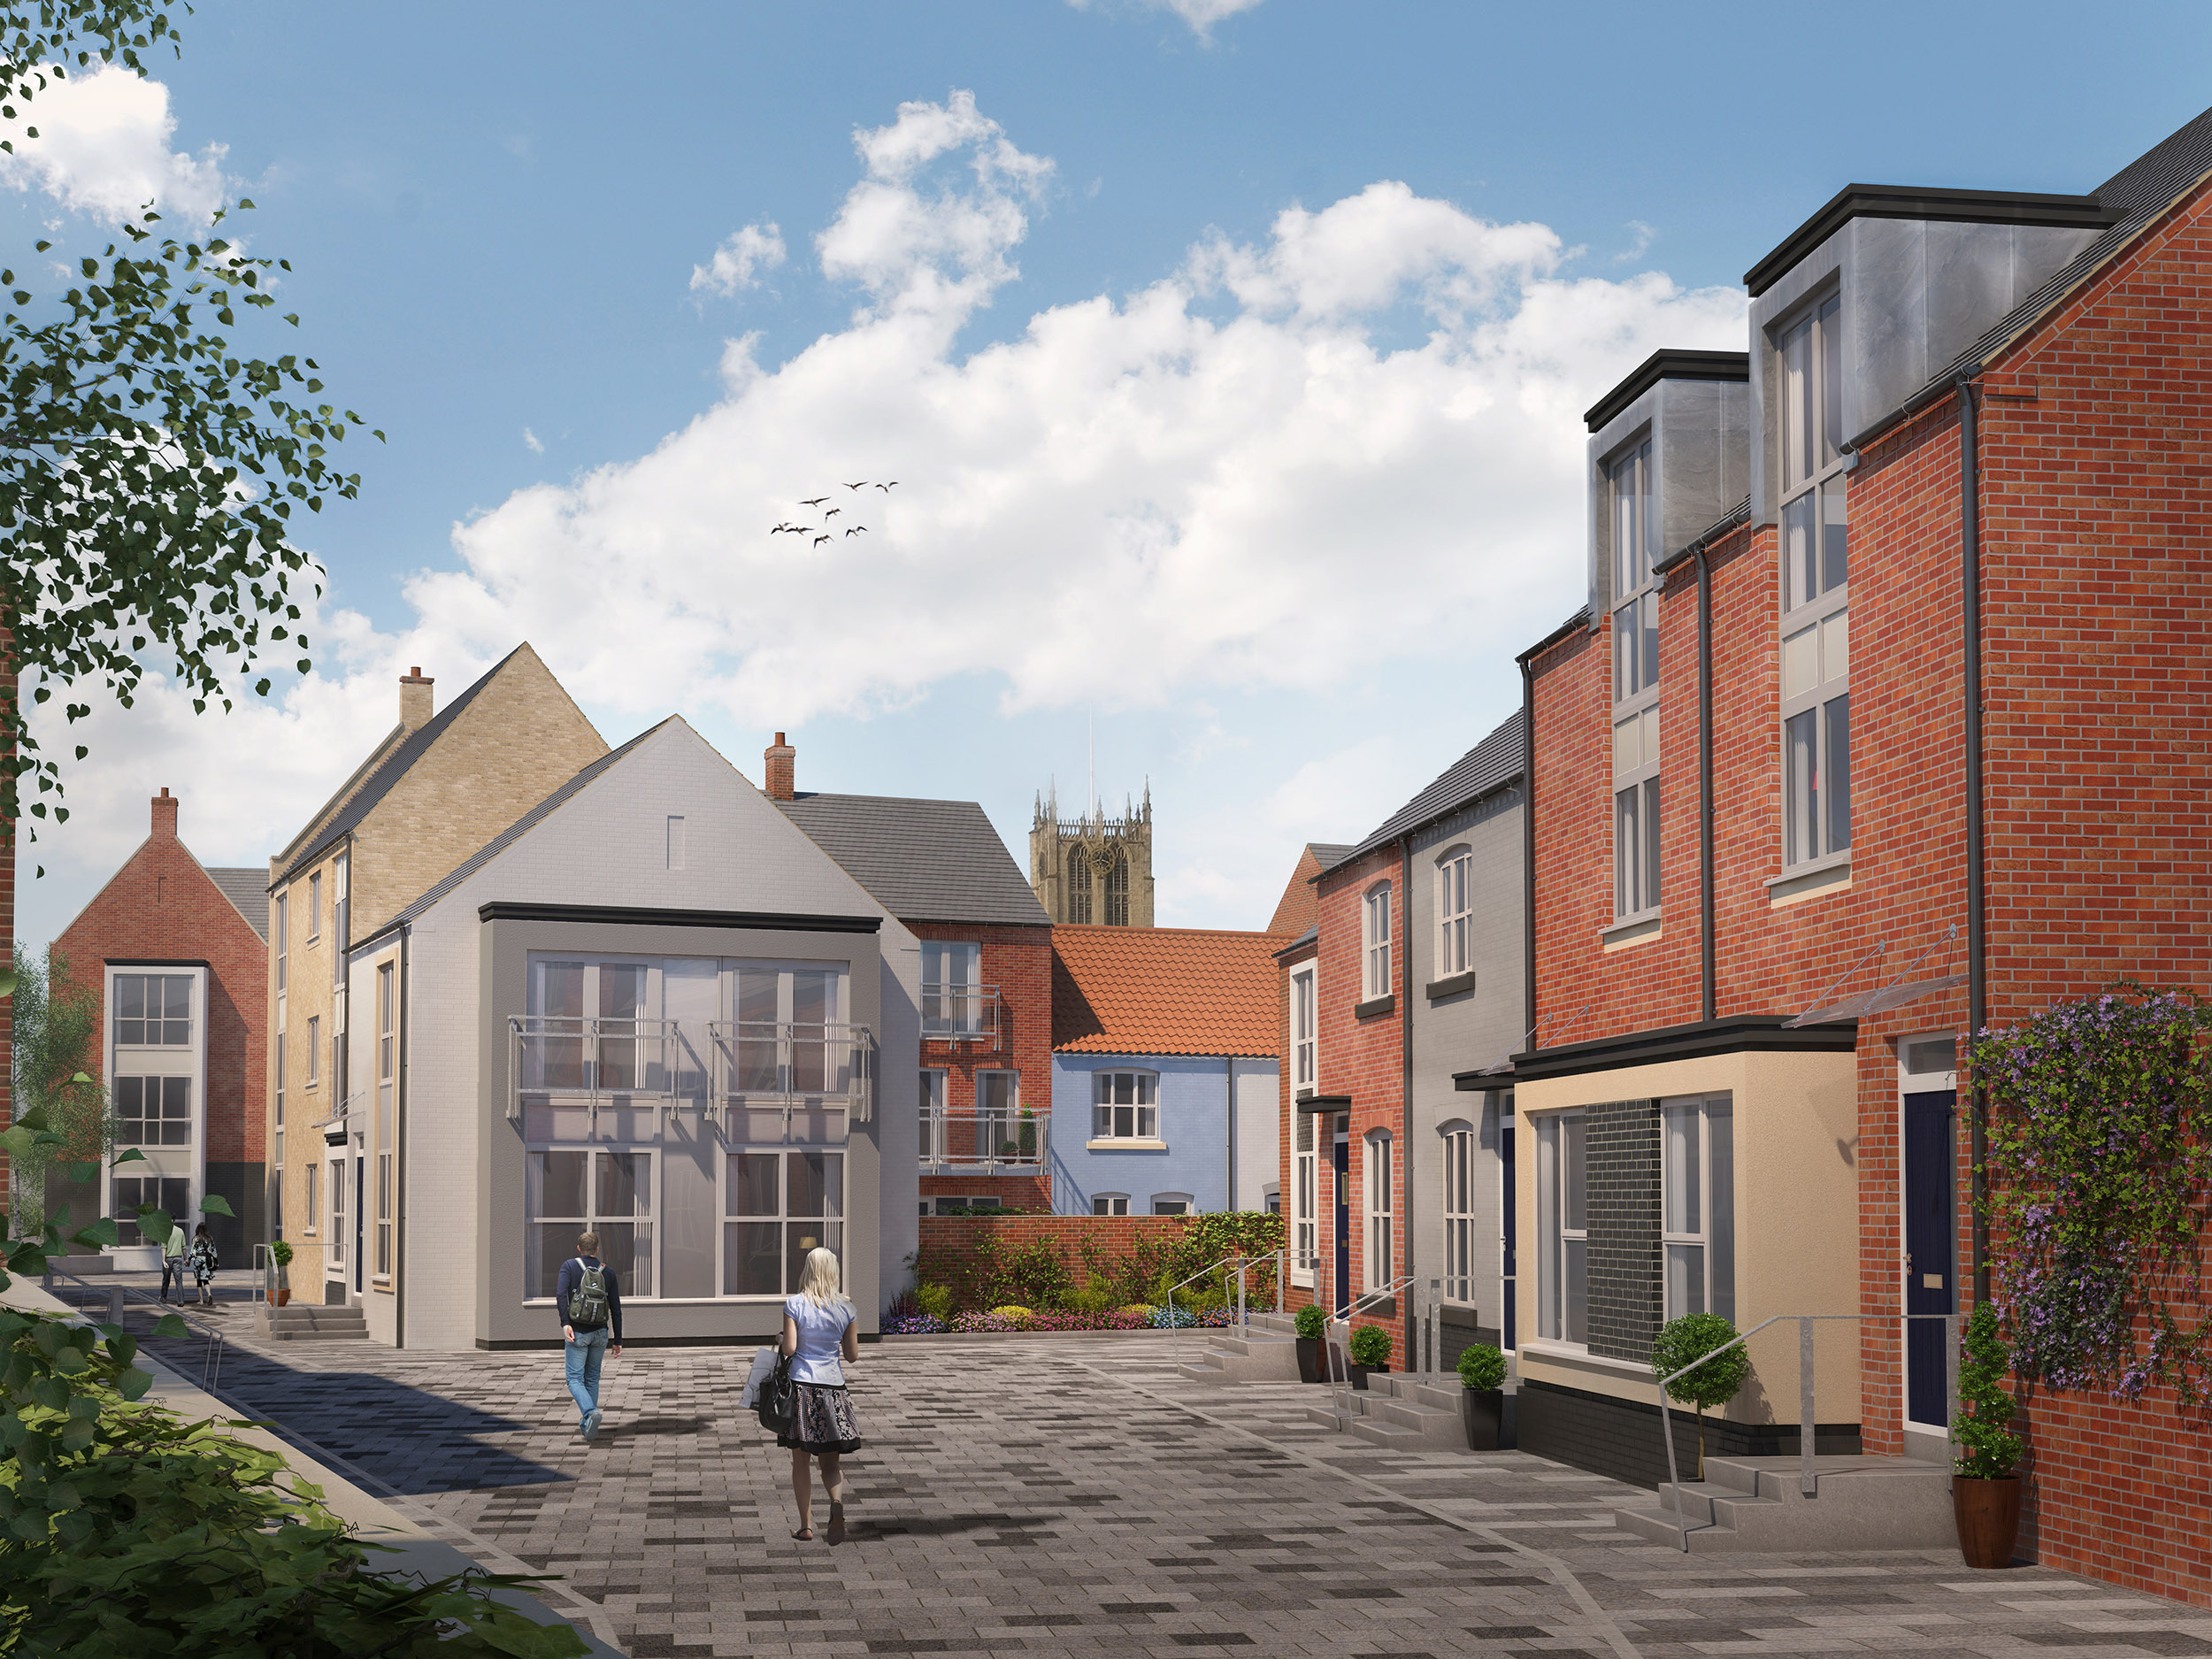 Scott's Quarter includes Scott's Square, which recreates an historic square lost to demolition many years ago. It will create an attractive pedestrian link between the new homes and the heart of the Fruit Market community in Humber Street.